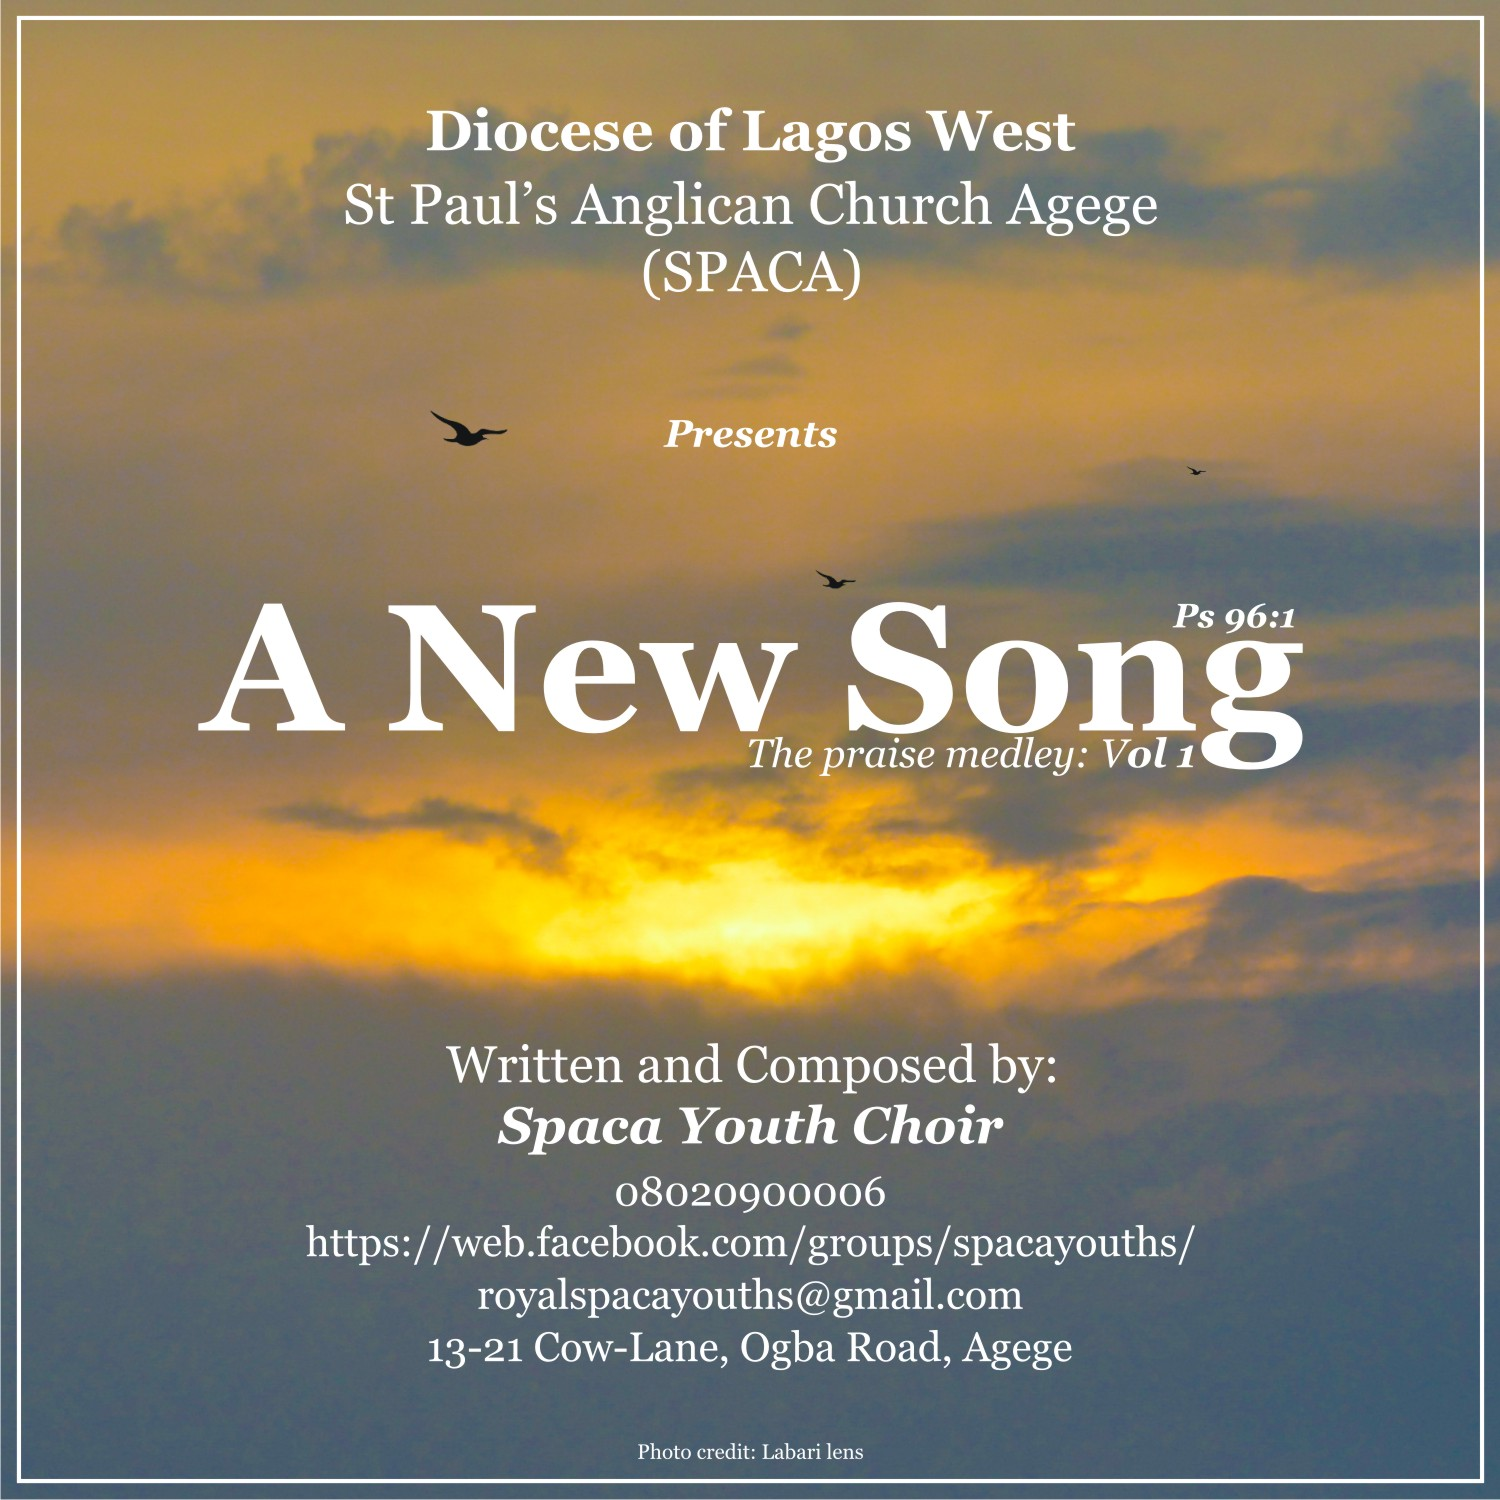 Music: A New Song By SPACA Youth Choir [@SpacaYouths]